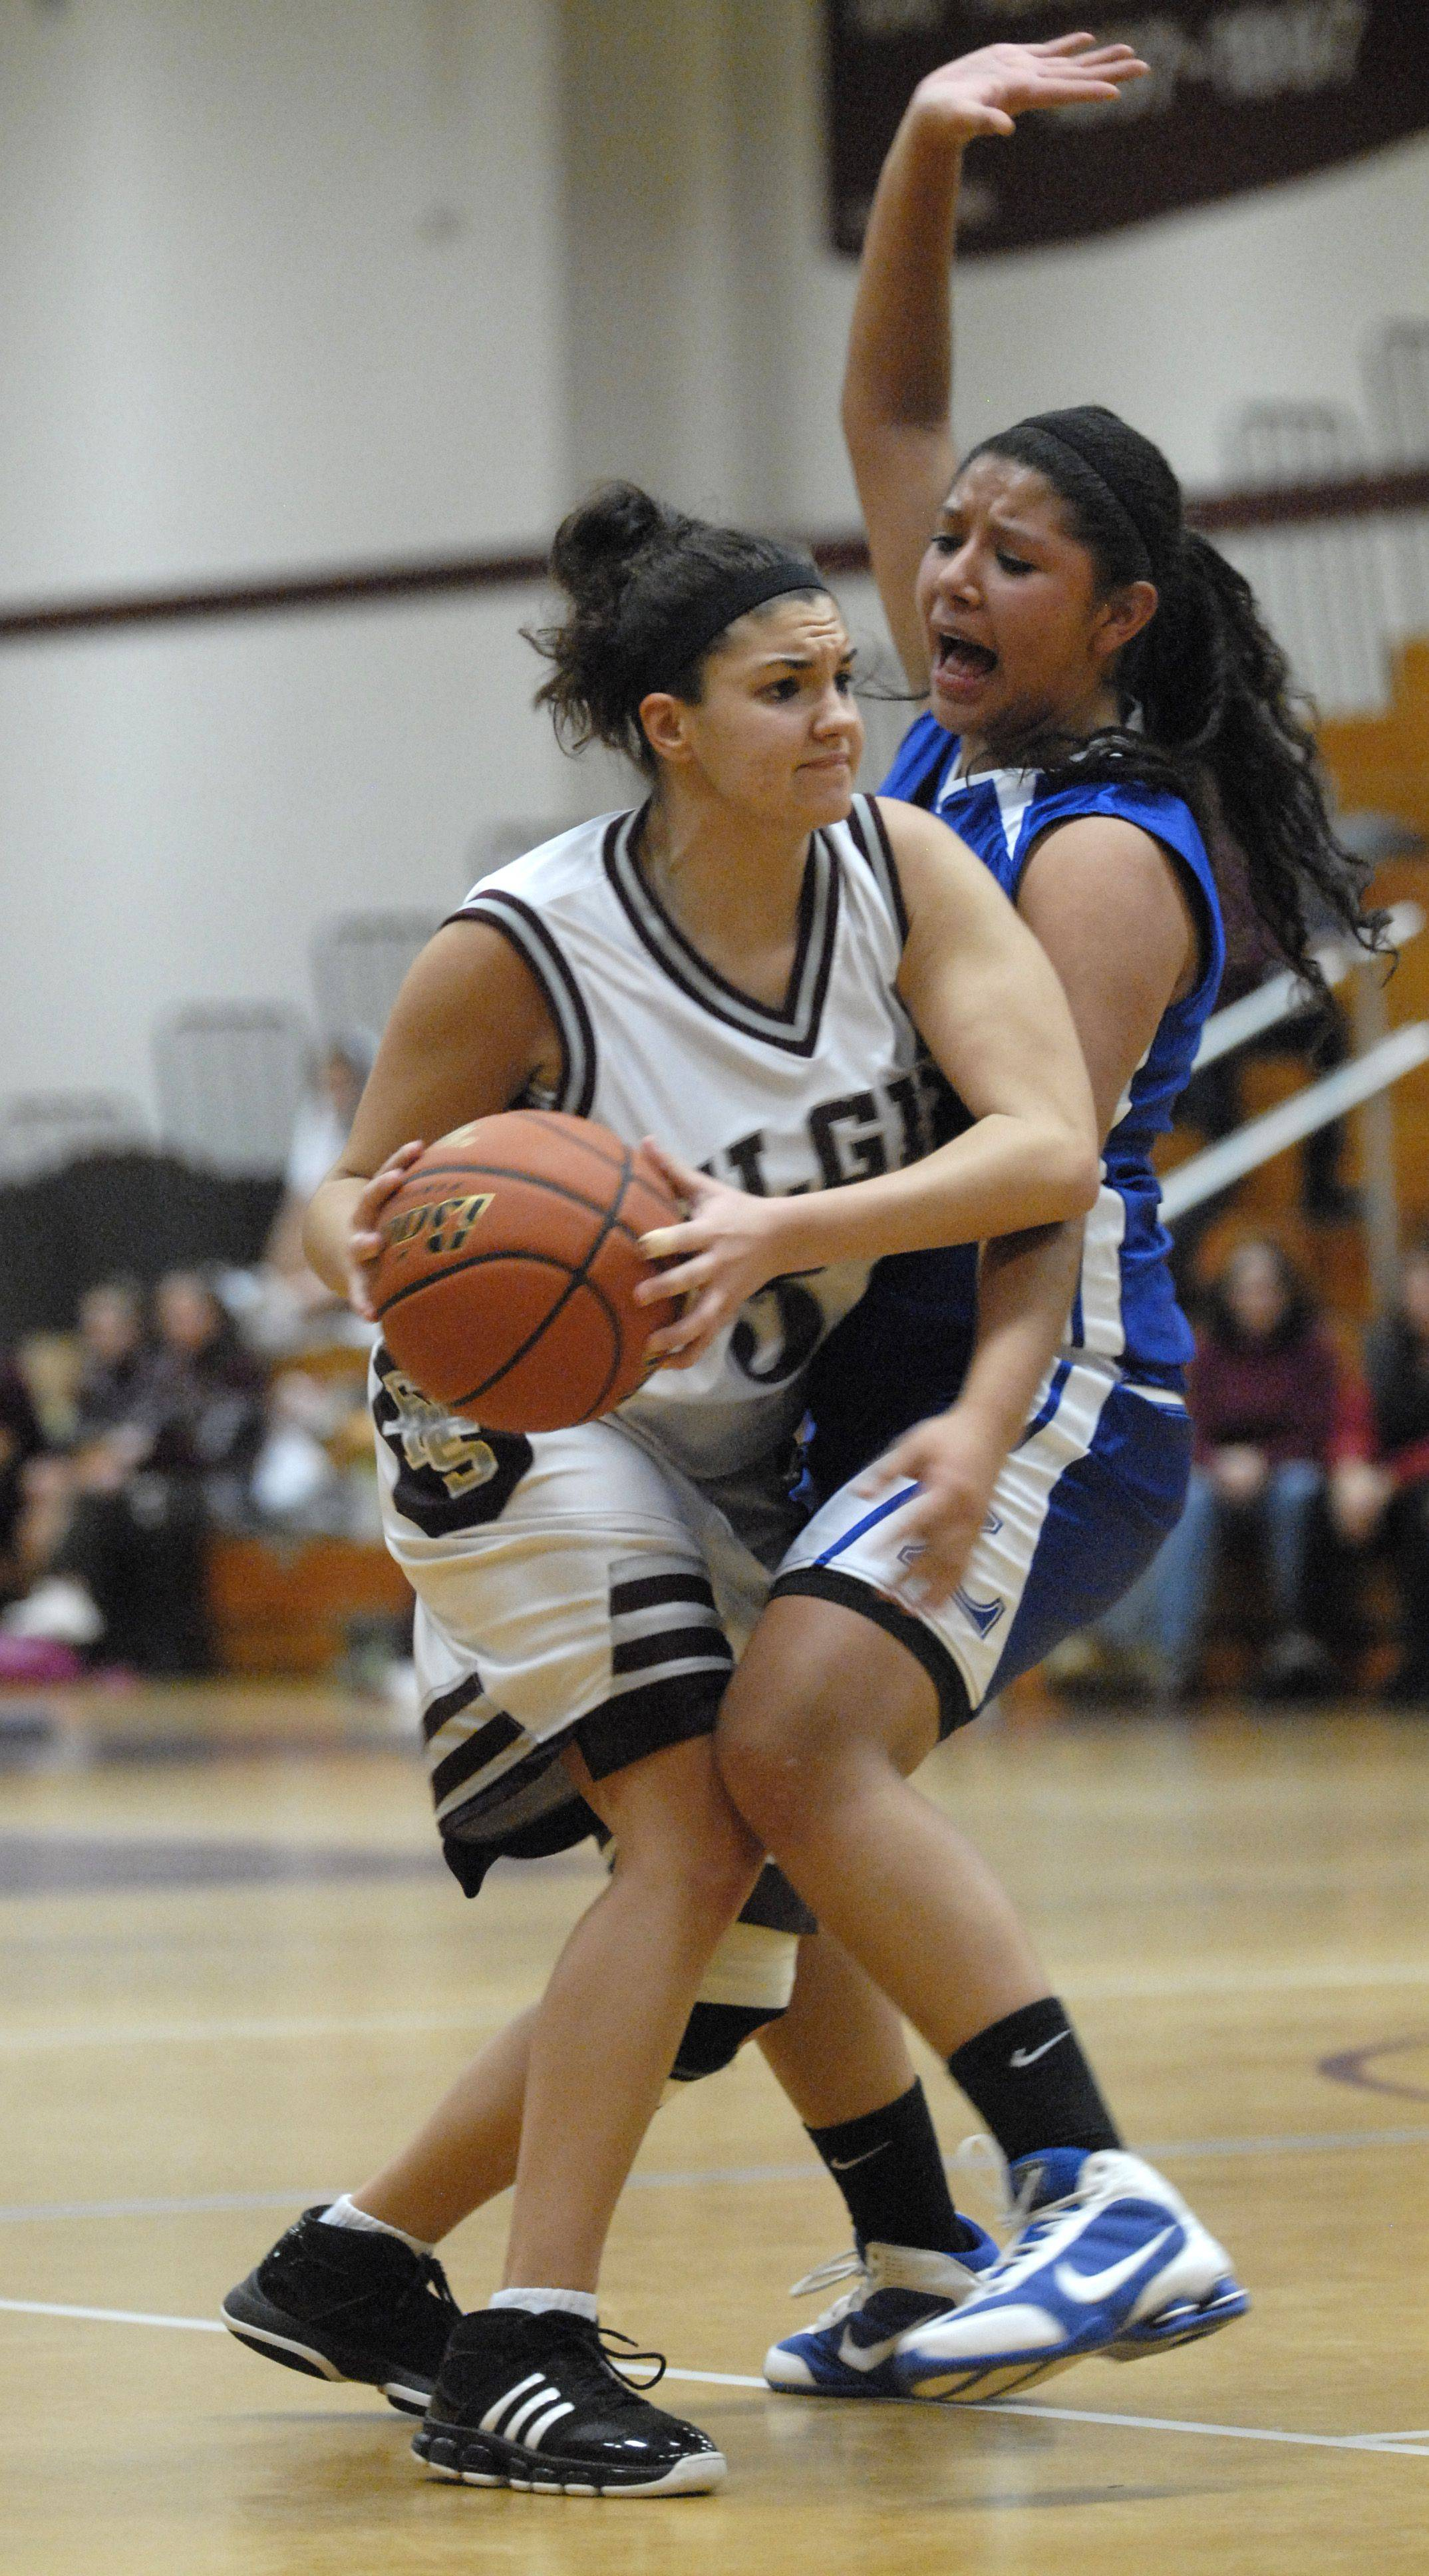 Jill Howe of Elgin searches for her next pass while defending Abigail Alvarez of Larkin Thursday evening.